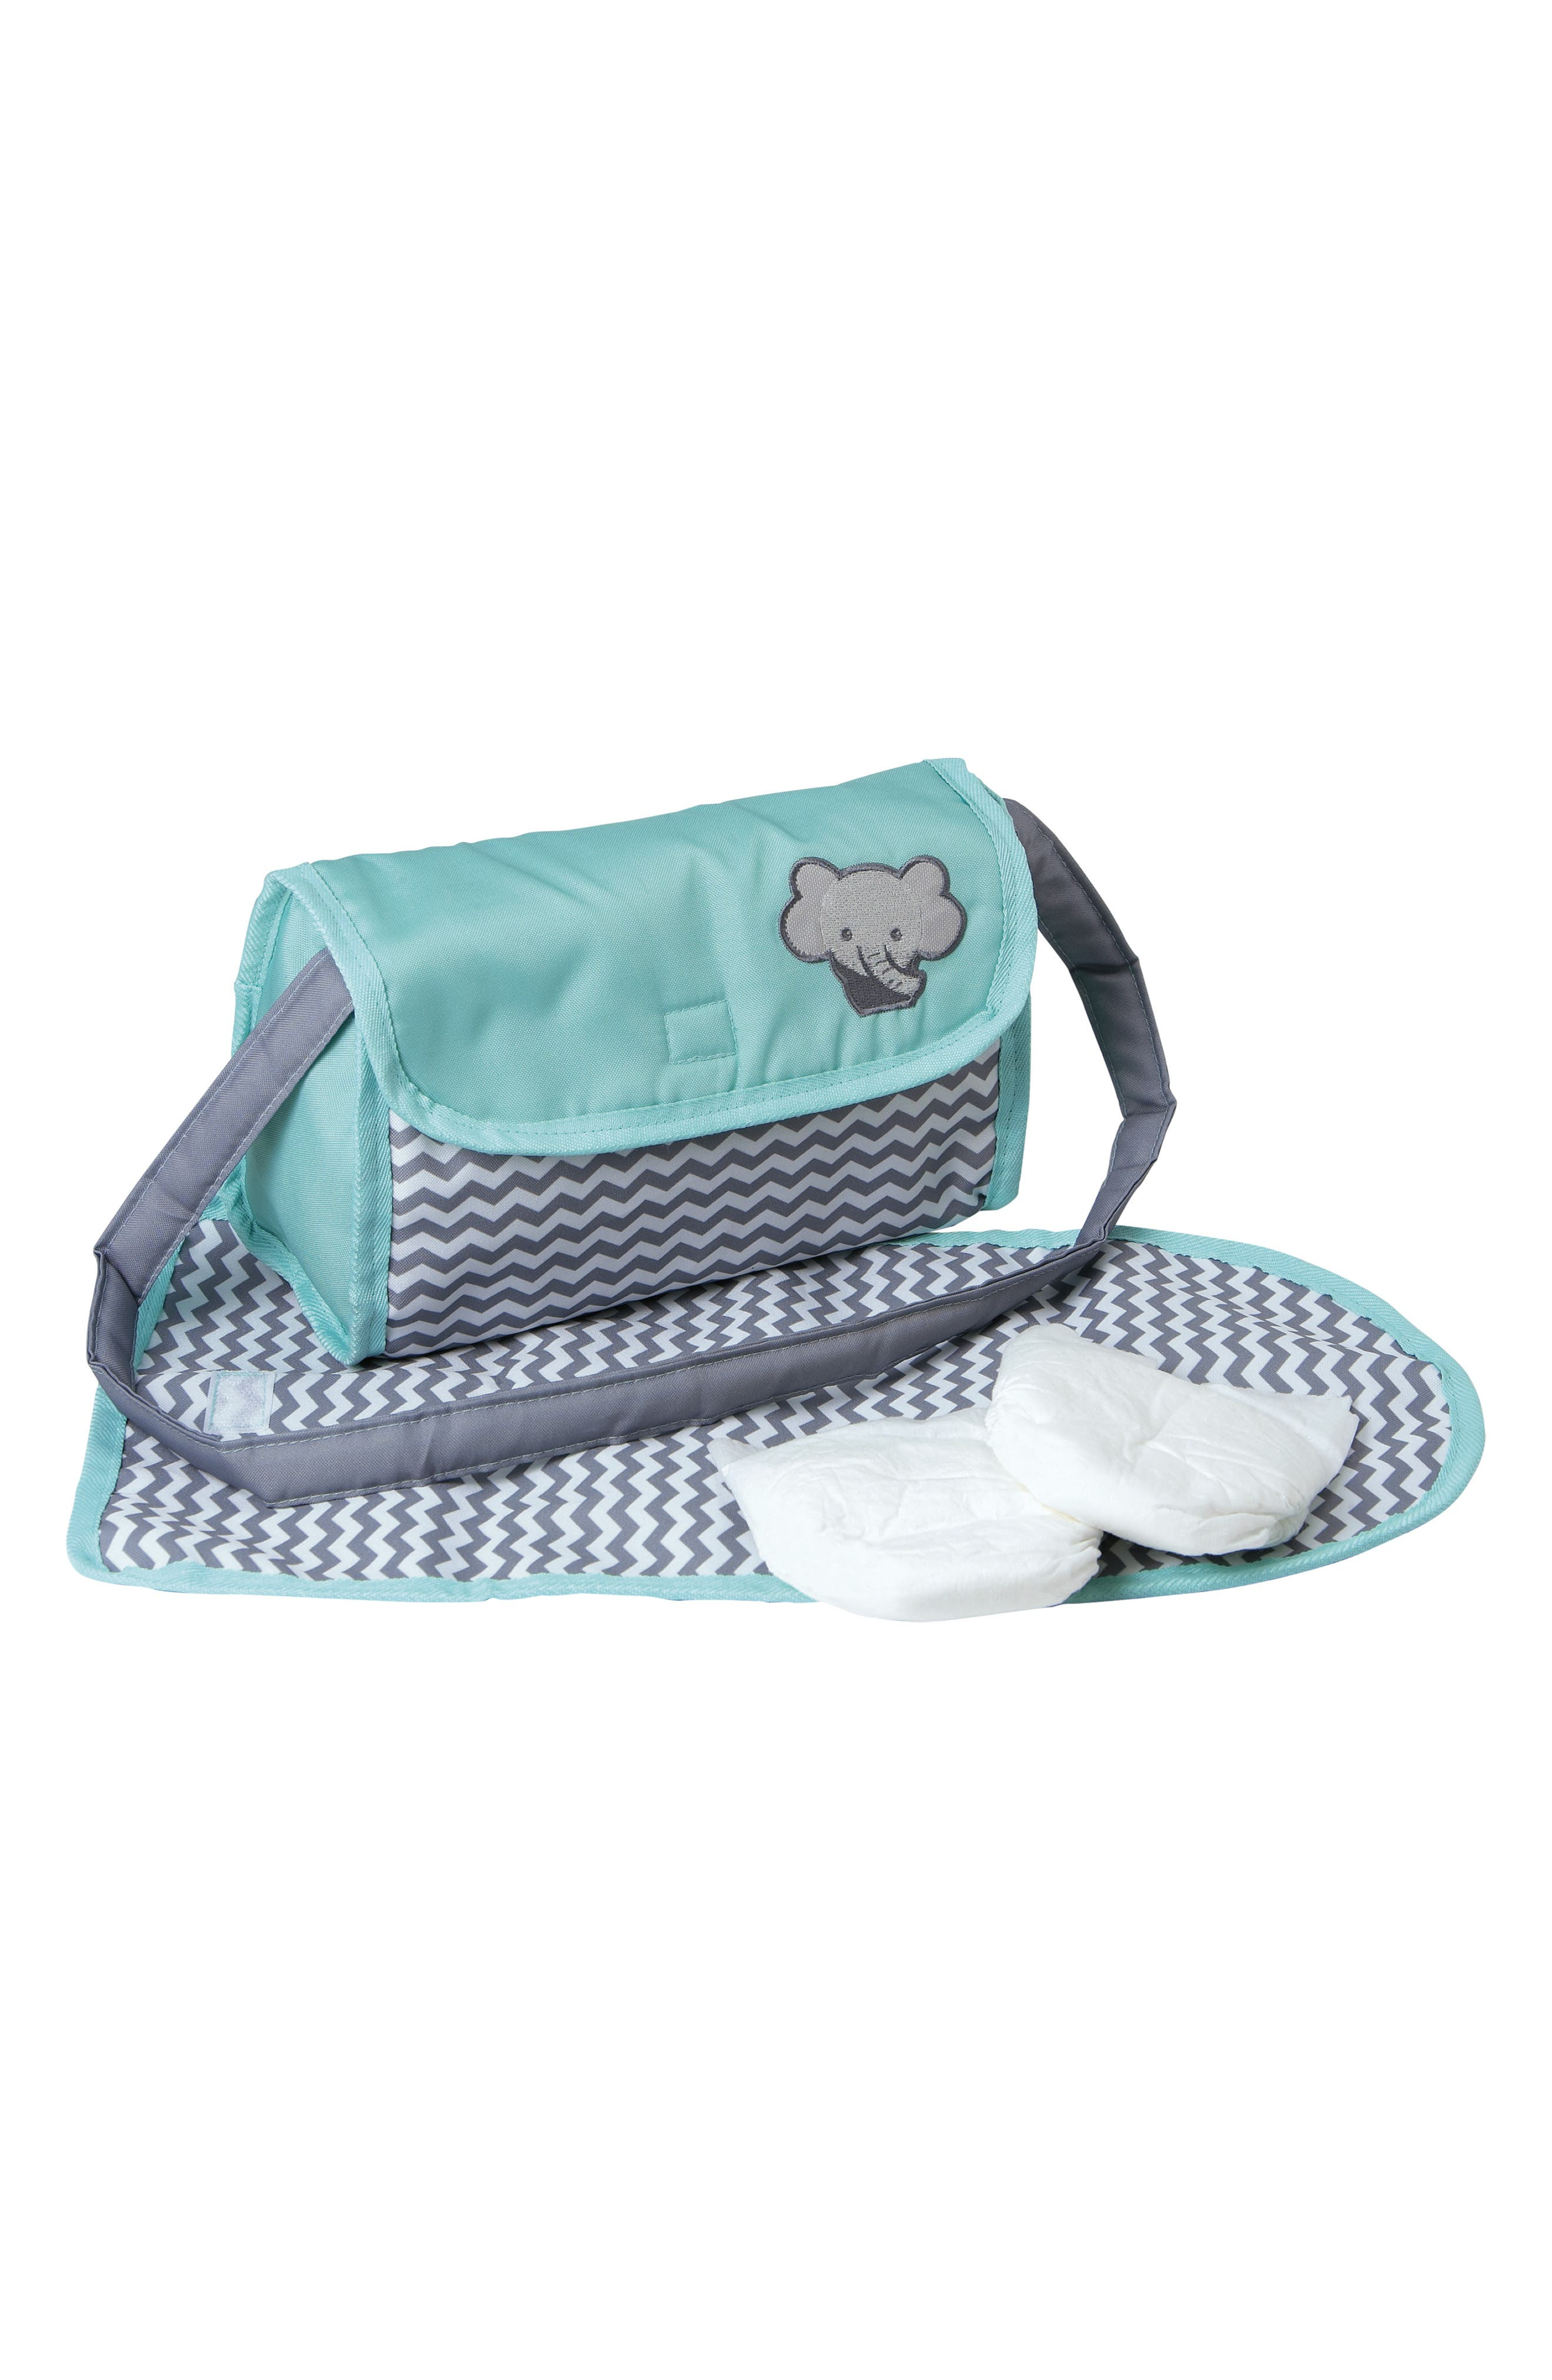 Girls Adora Chevron Print Doll Diaper Bag